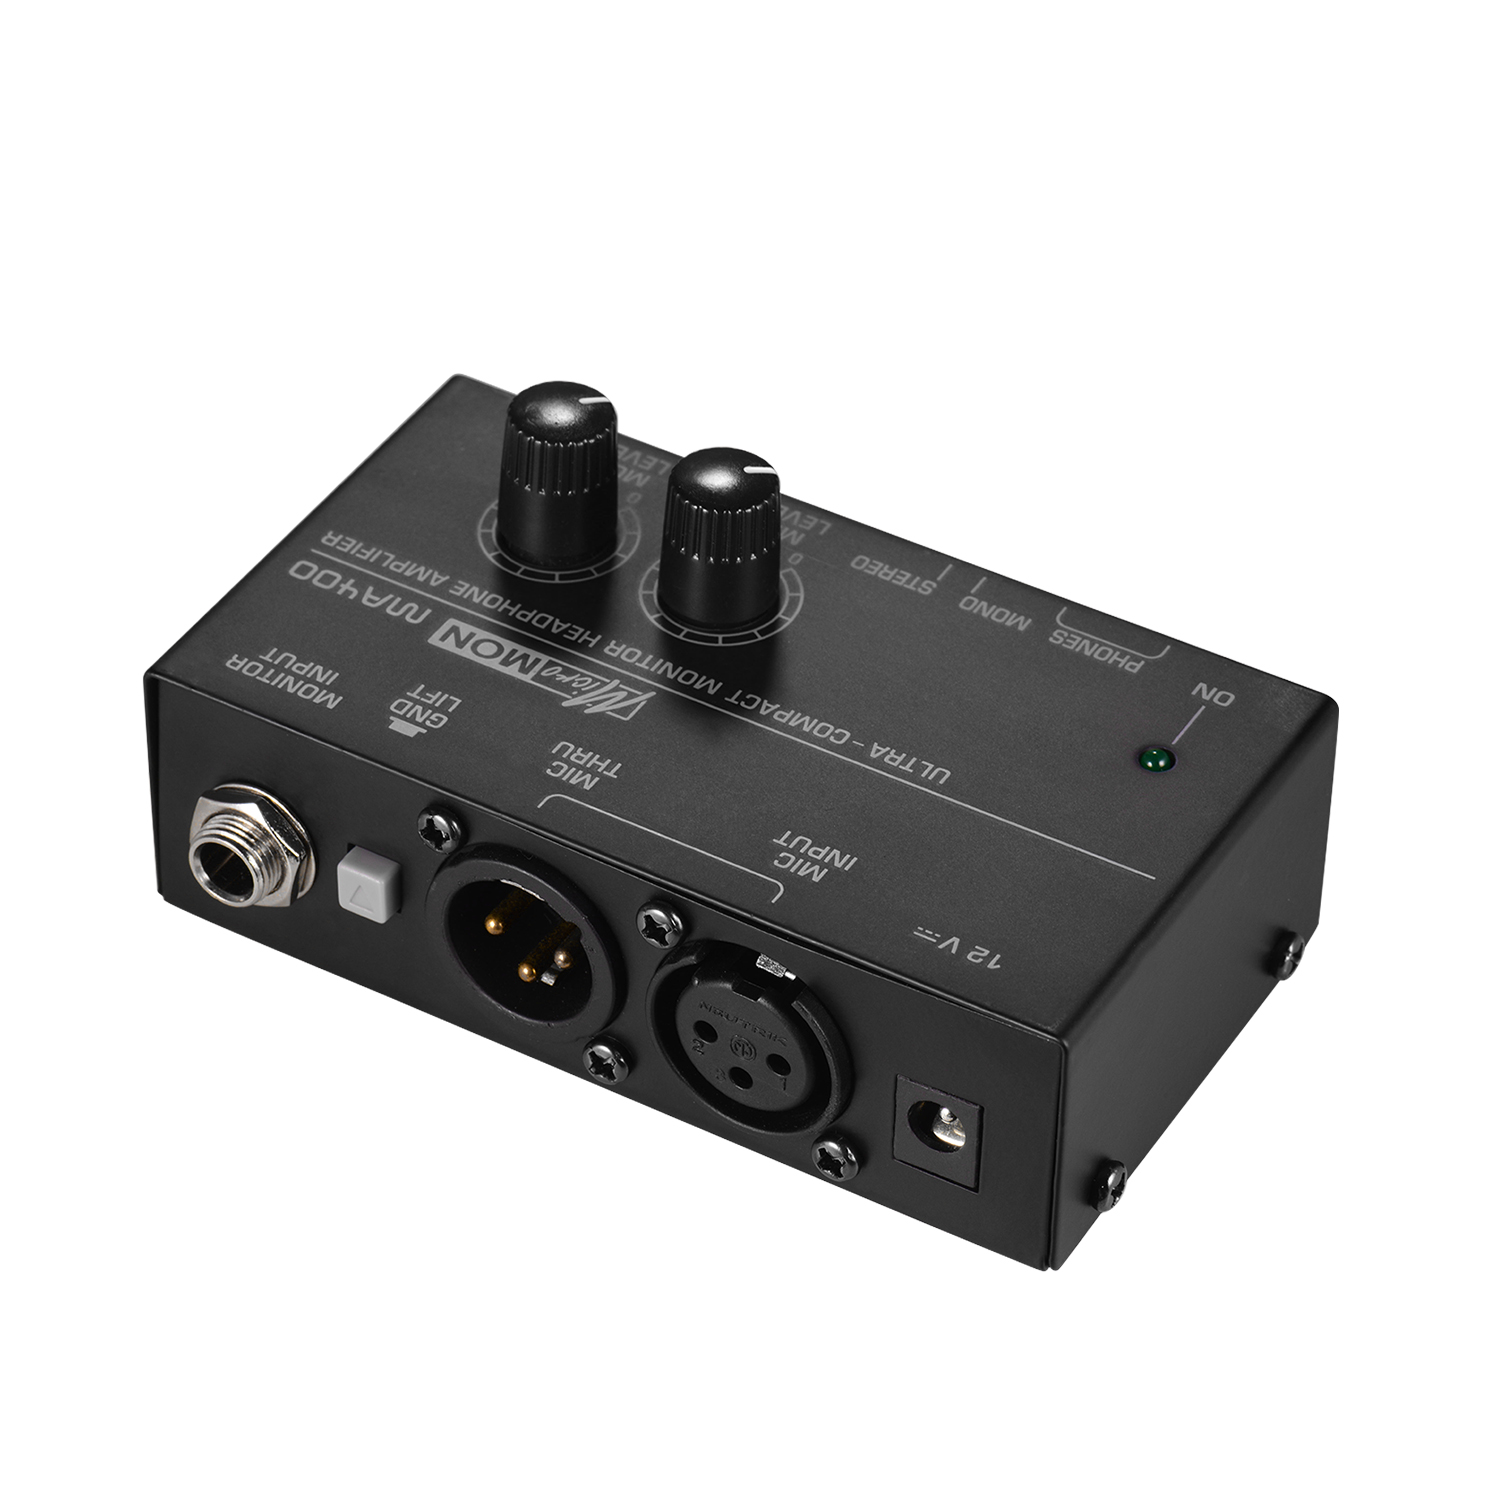 Personal In-ear Monitor Headphones Earphones Amplifier Amp With XLR Inputs 6.35mm Output Audio Interface